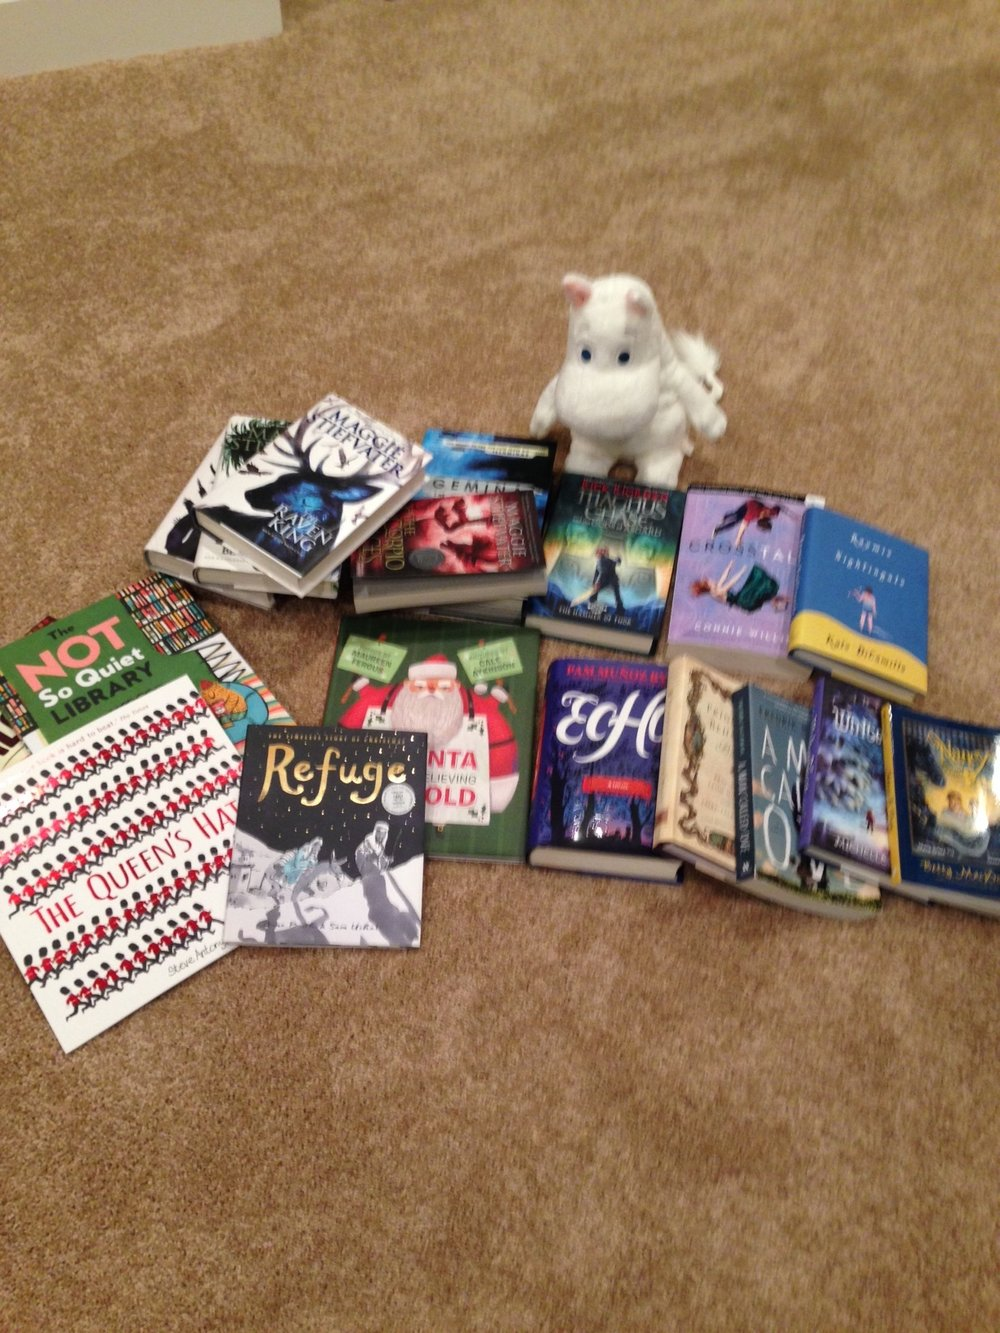 Some of my favorites, with Moomintroll!